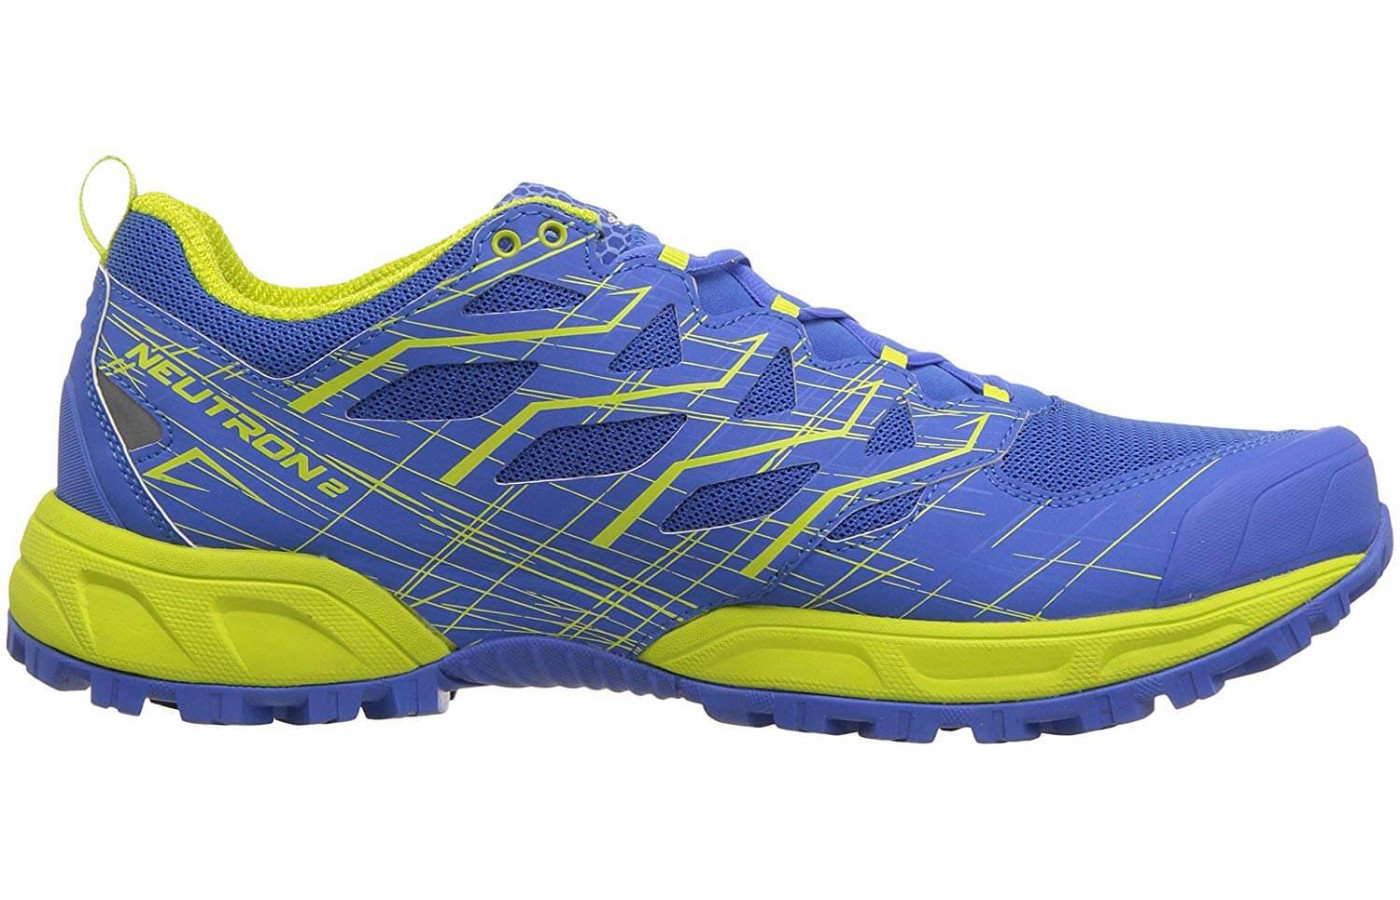 Along with its midsole, the Neuron 2 also has a H-EVA plate for cushioning.